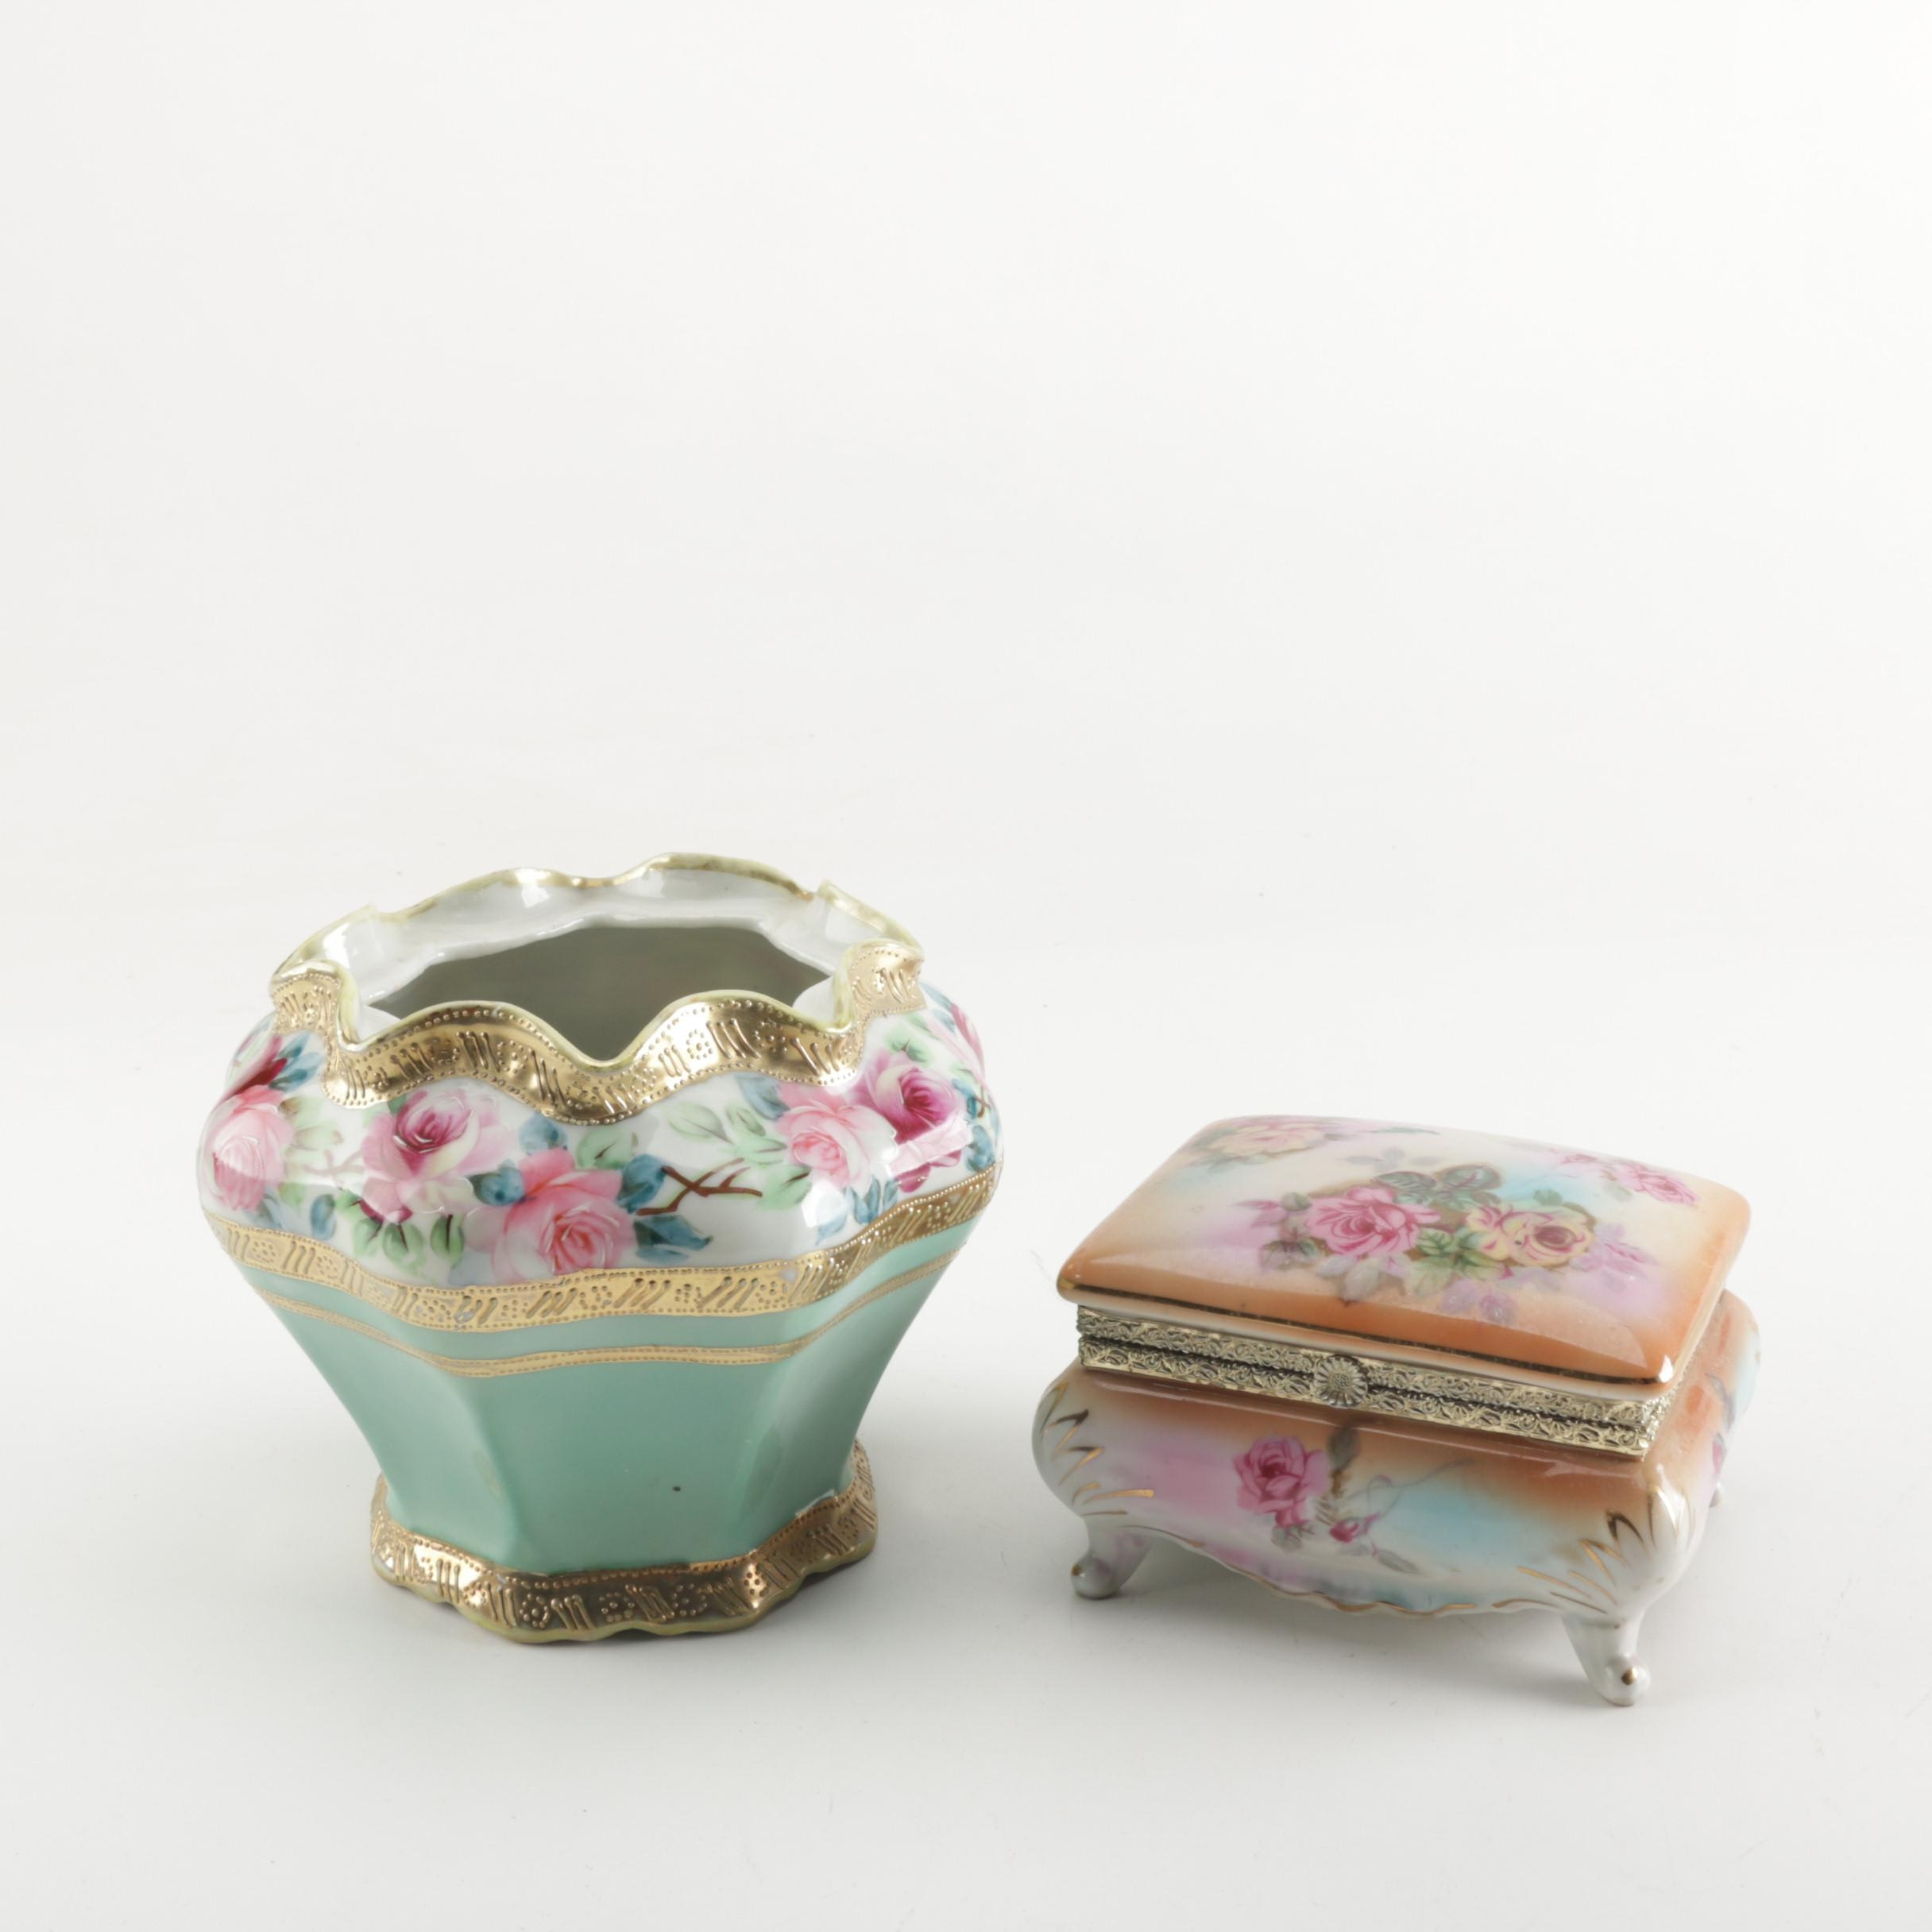 Vintage Hand Painted Porcelain Trinket Box and Vase